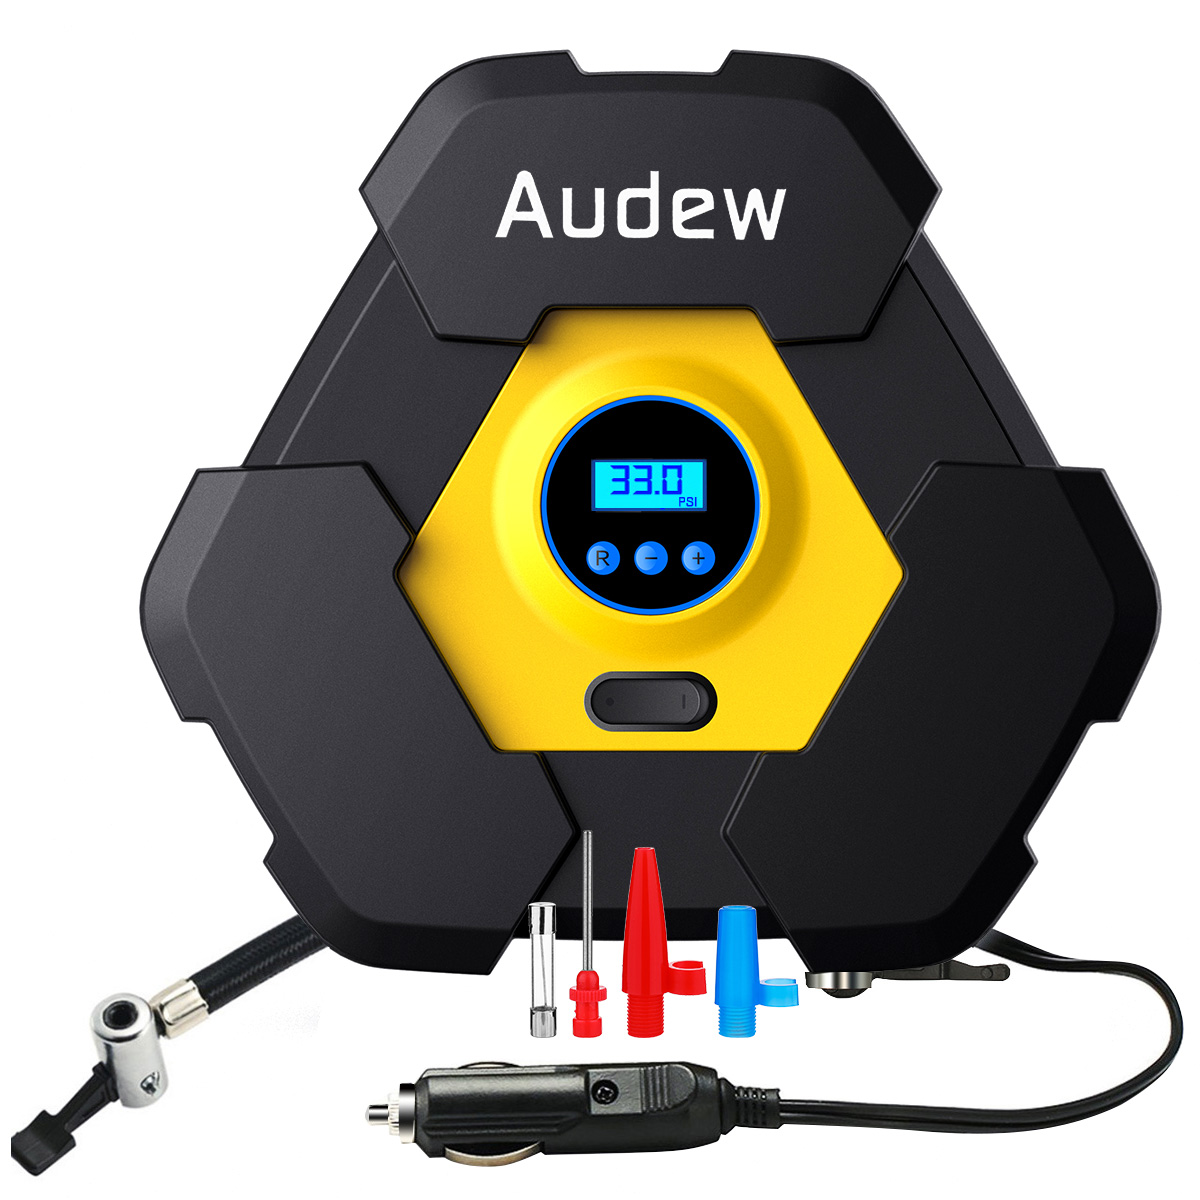 Audew Portable Air Compressor Pump DC12V Auto Digital Tire Inflator, 12V 150 PSI Tire Pump for Car, Truck, Bicycle, and Other Inflatables